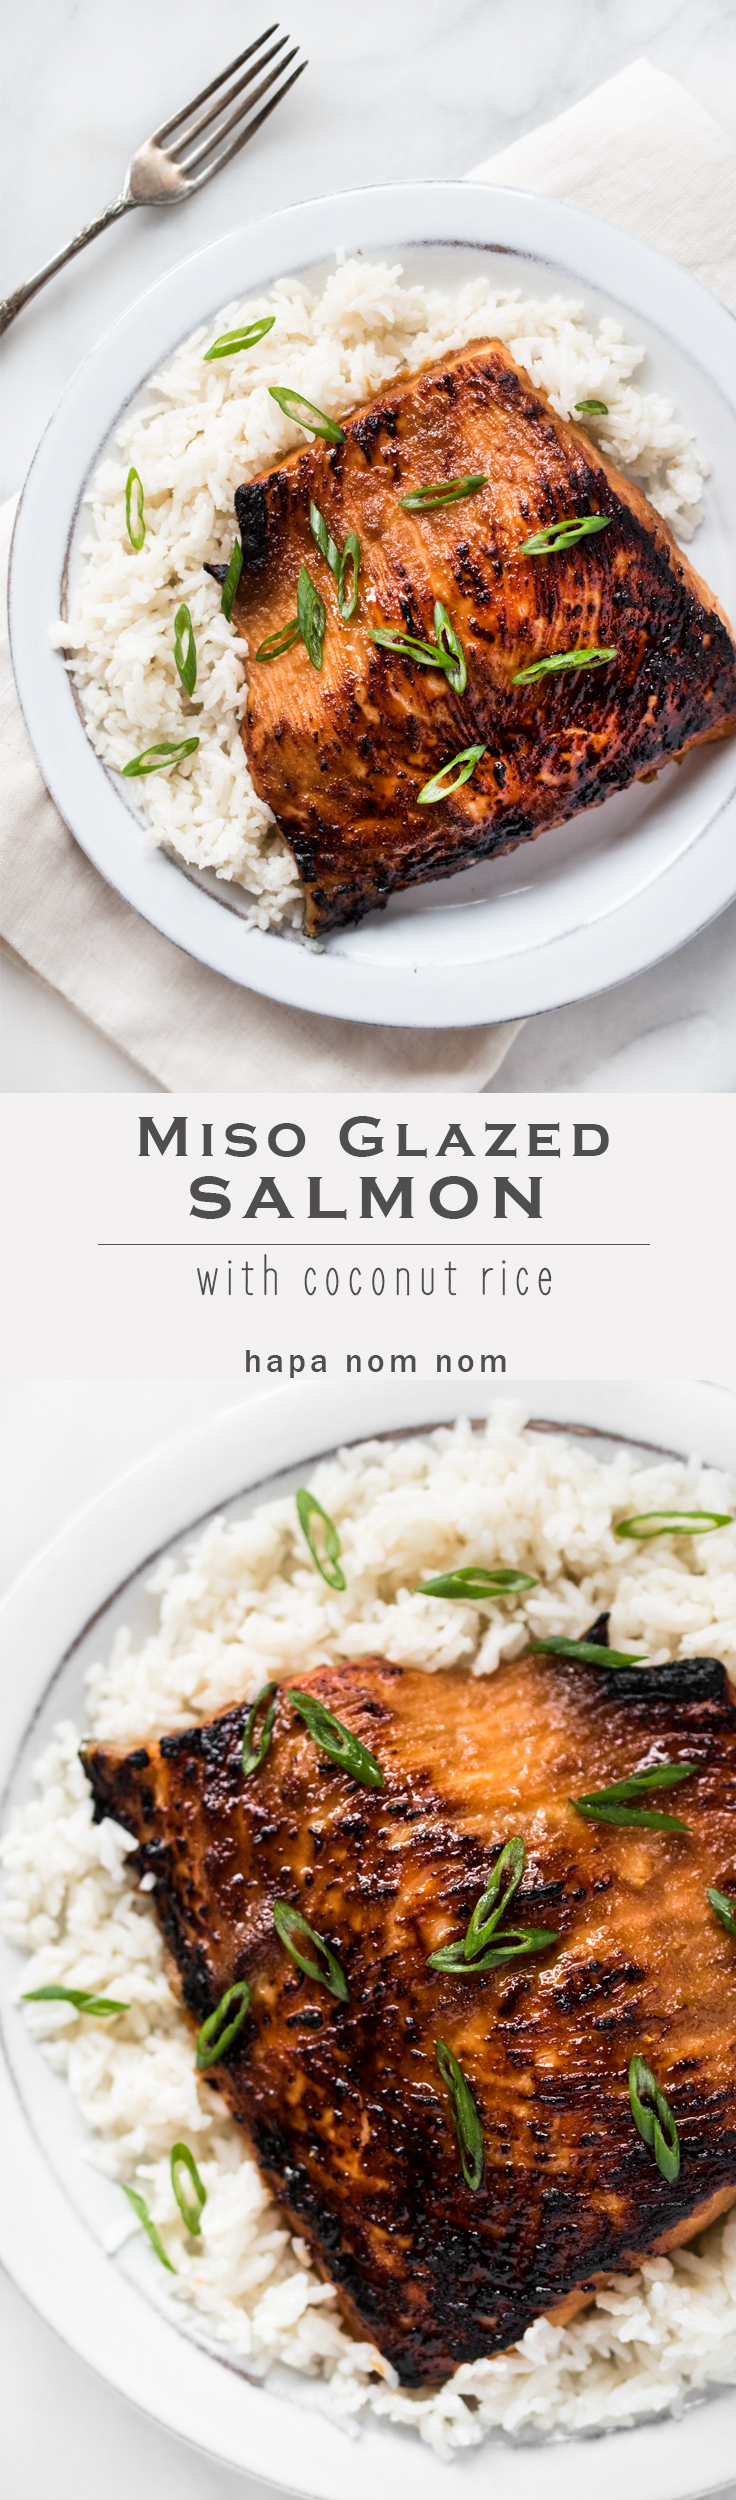 Miso Glazed Salmon with Coconut Rice is a simple yet elegant dish packed with flavor!